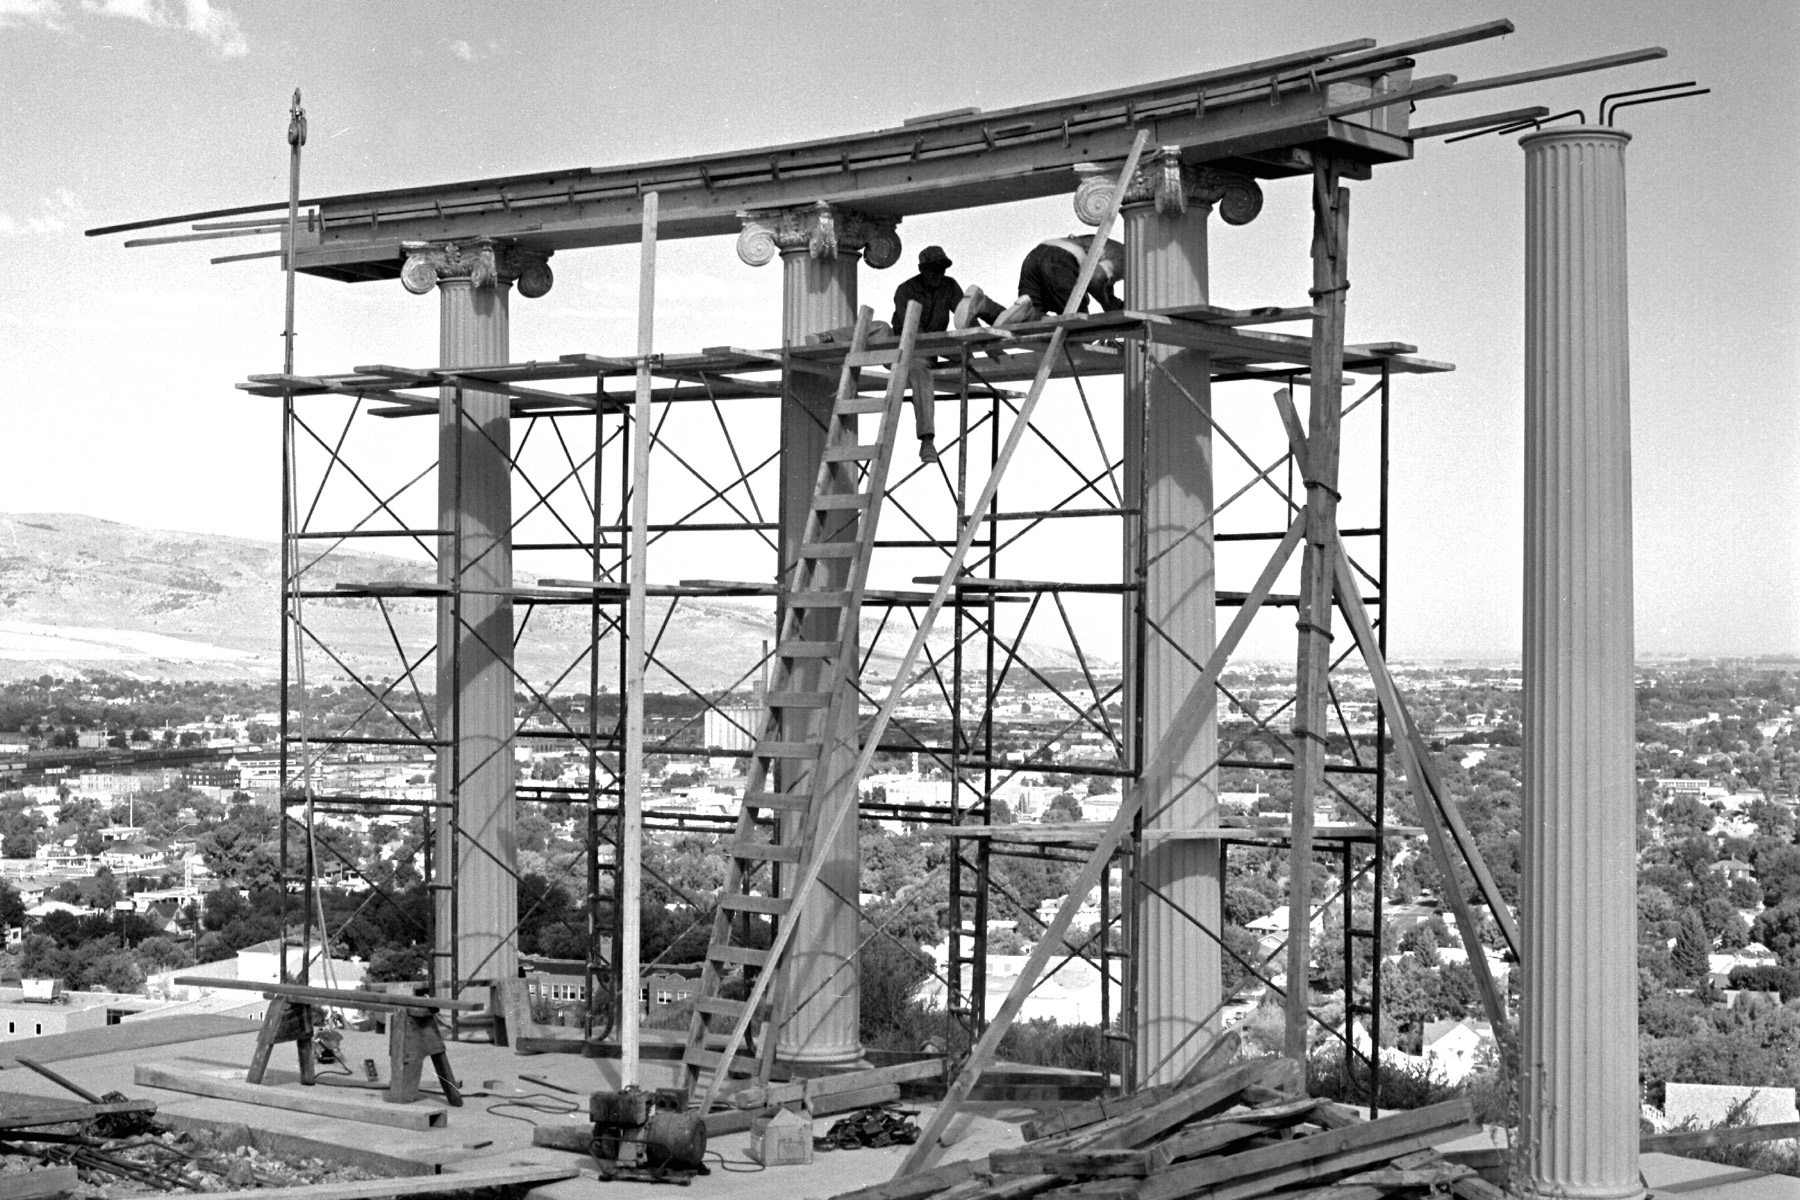 Image of the columns on top of Red Hill under constructions in 1970s